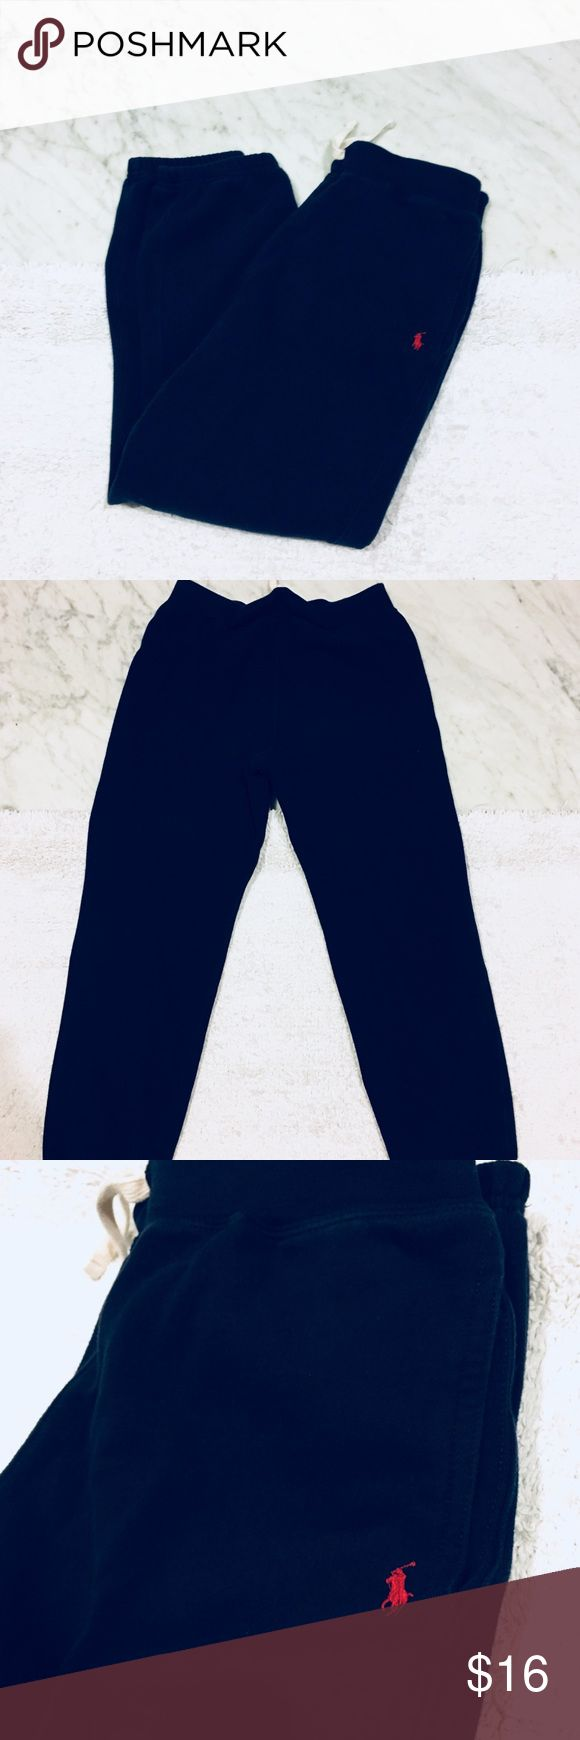 Boys Polo Joggers Boys Polo Joggers Polo by Ralph Lauren Bottoms Sweatpants & Joggers